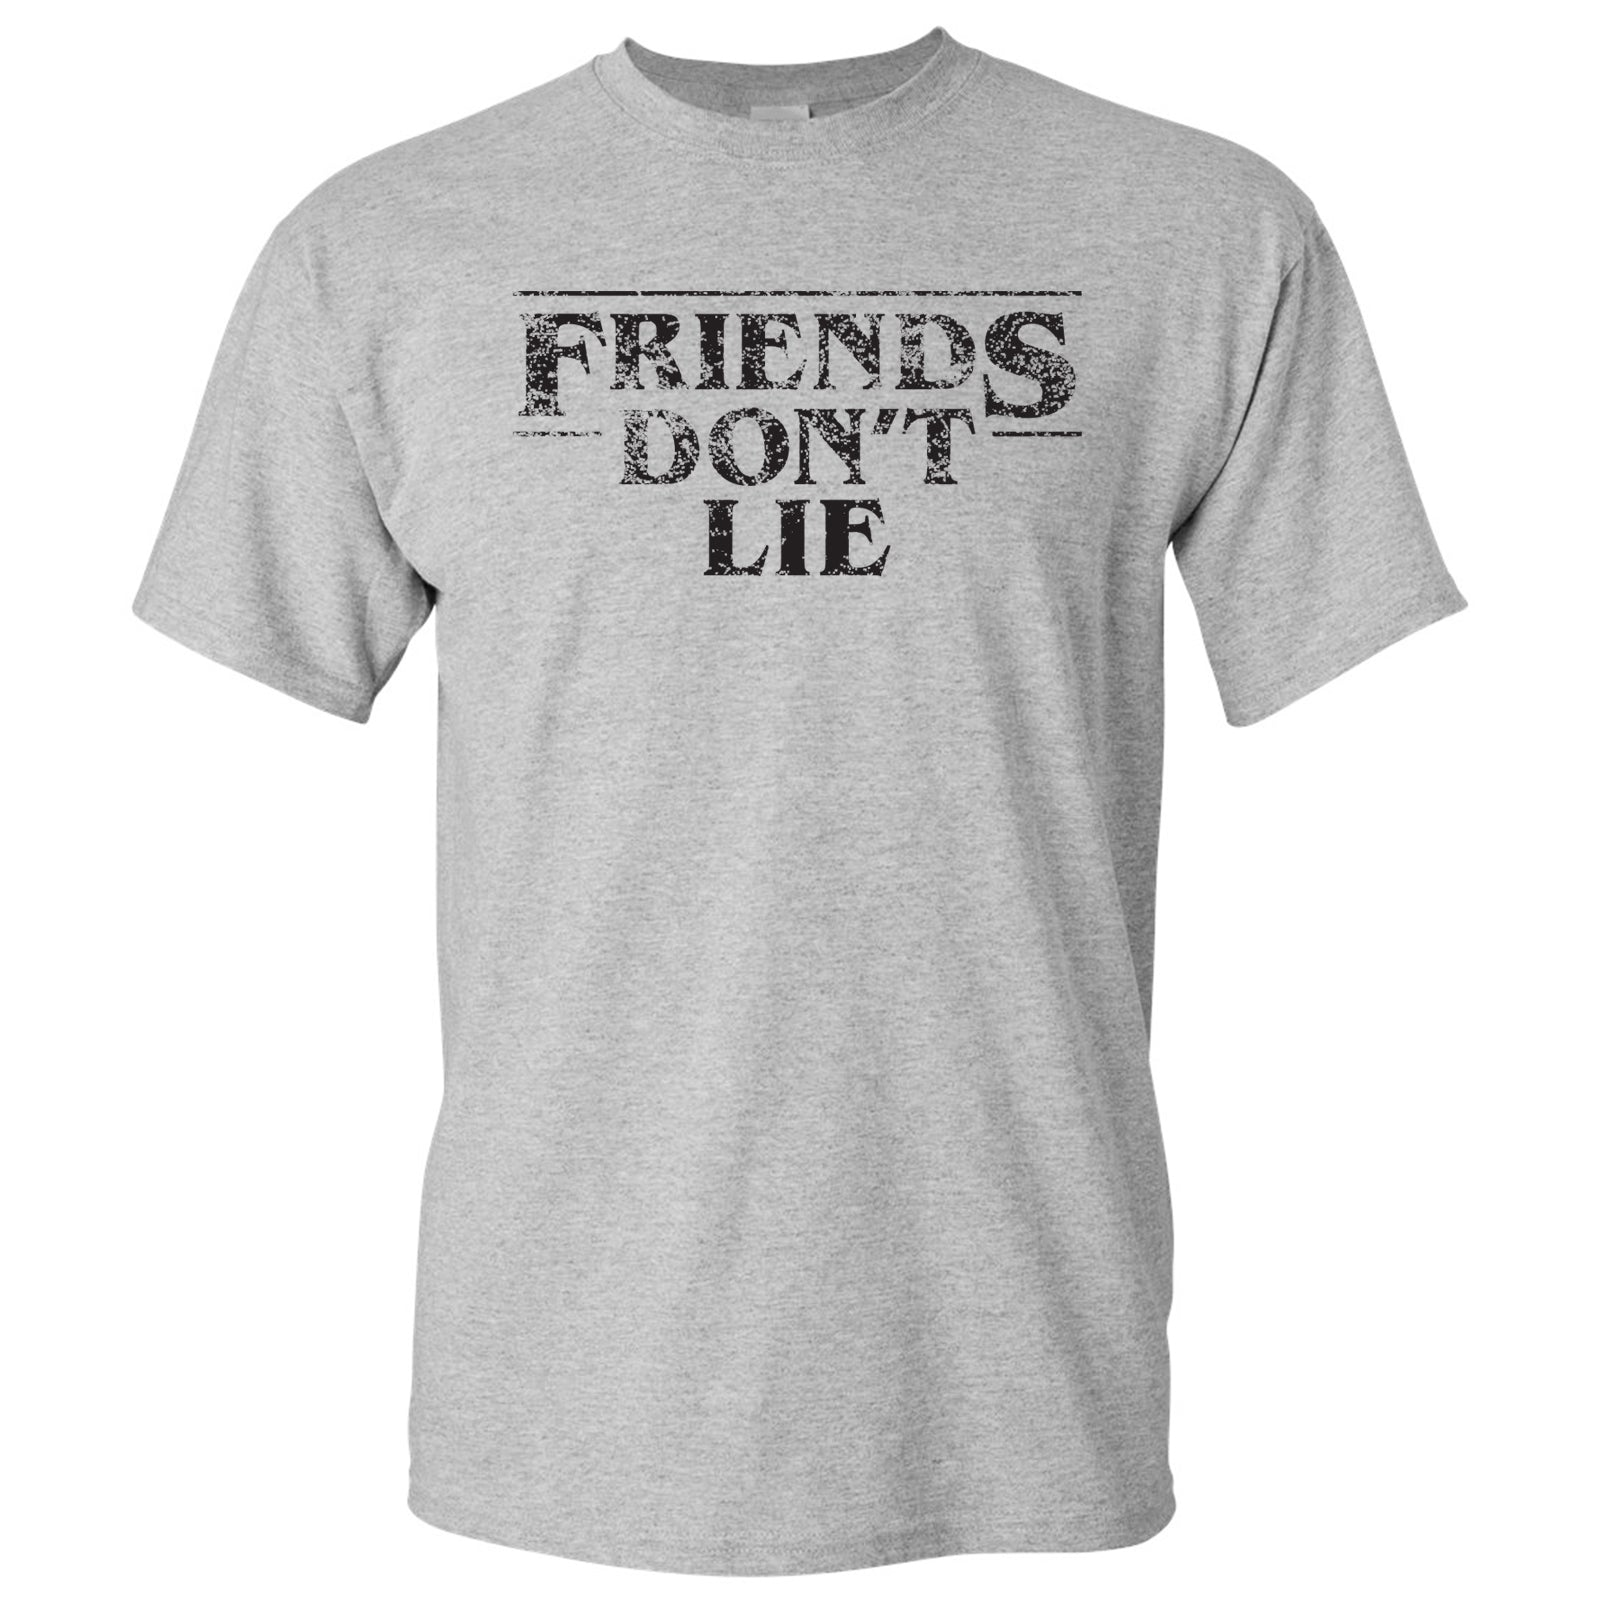 a71ad369 Friends Don't Lie - Stranger of Things - T-Shirt - Sports Grey